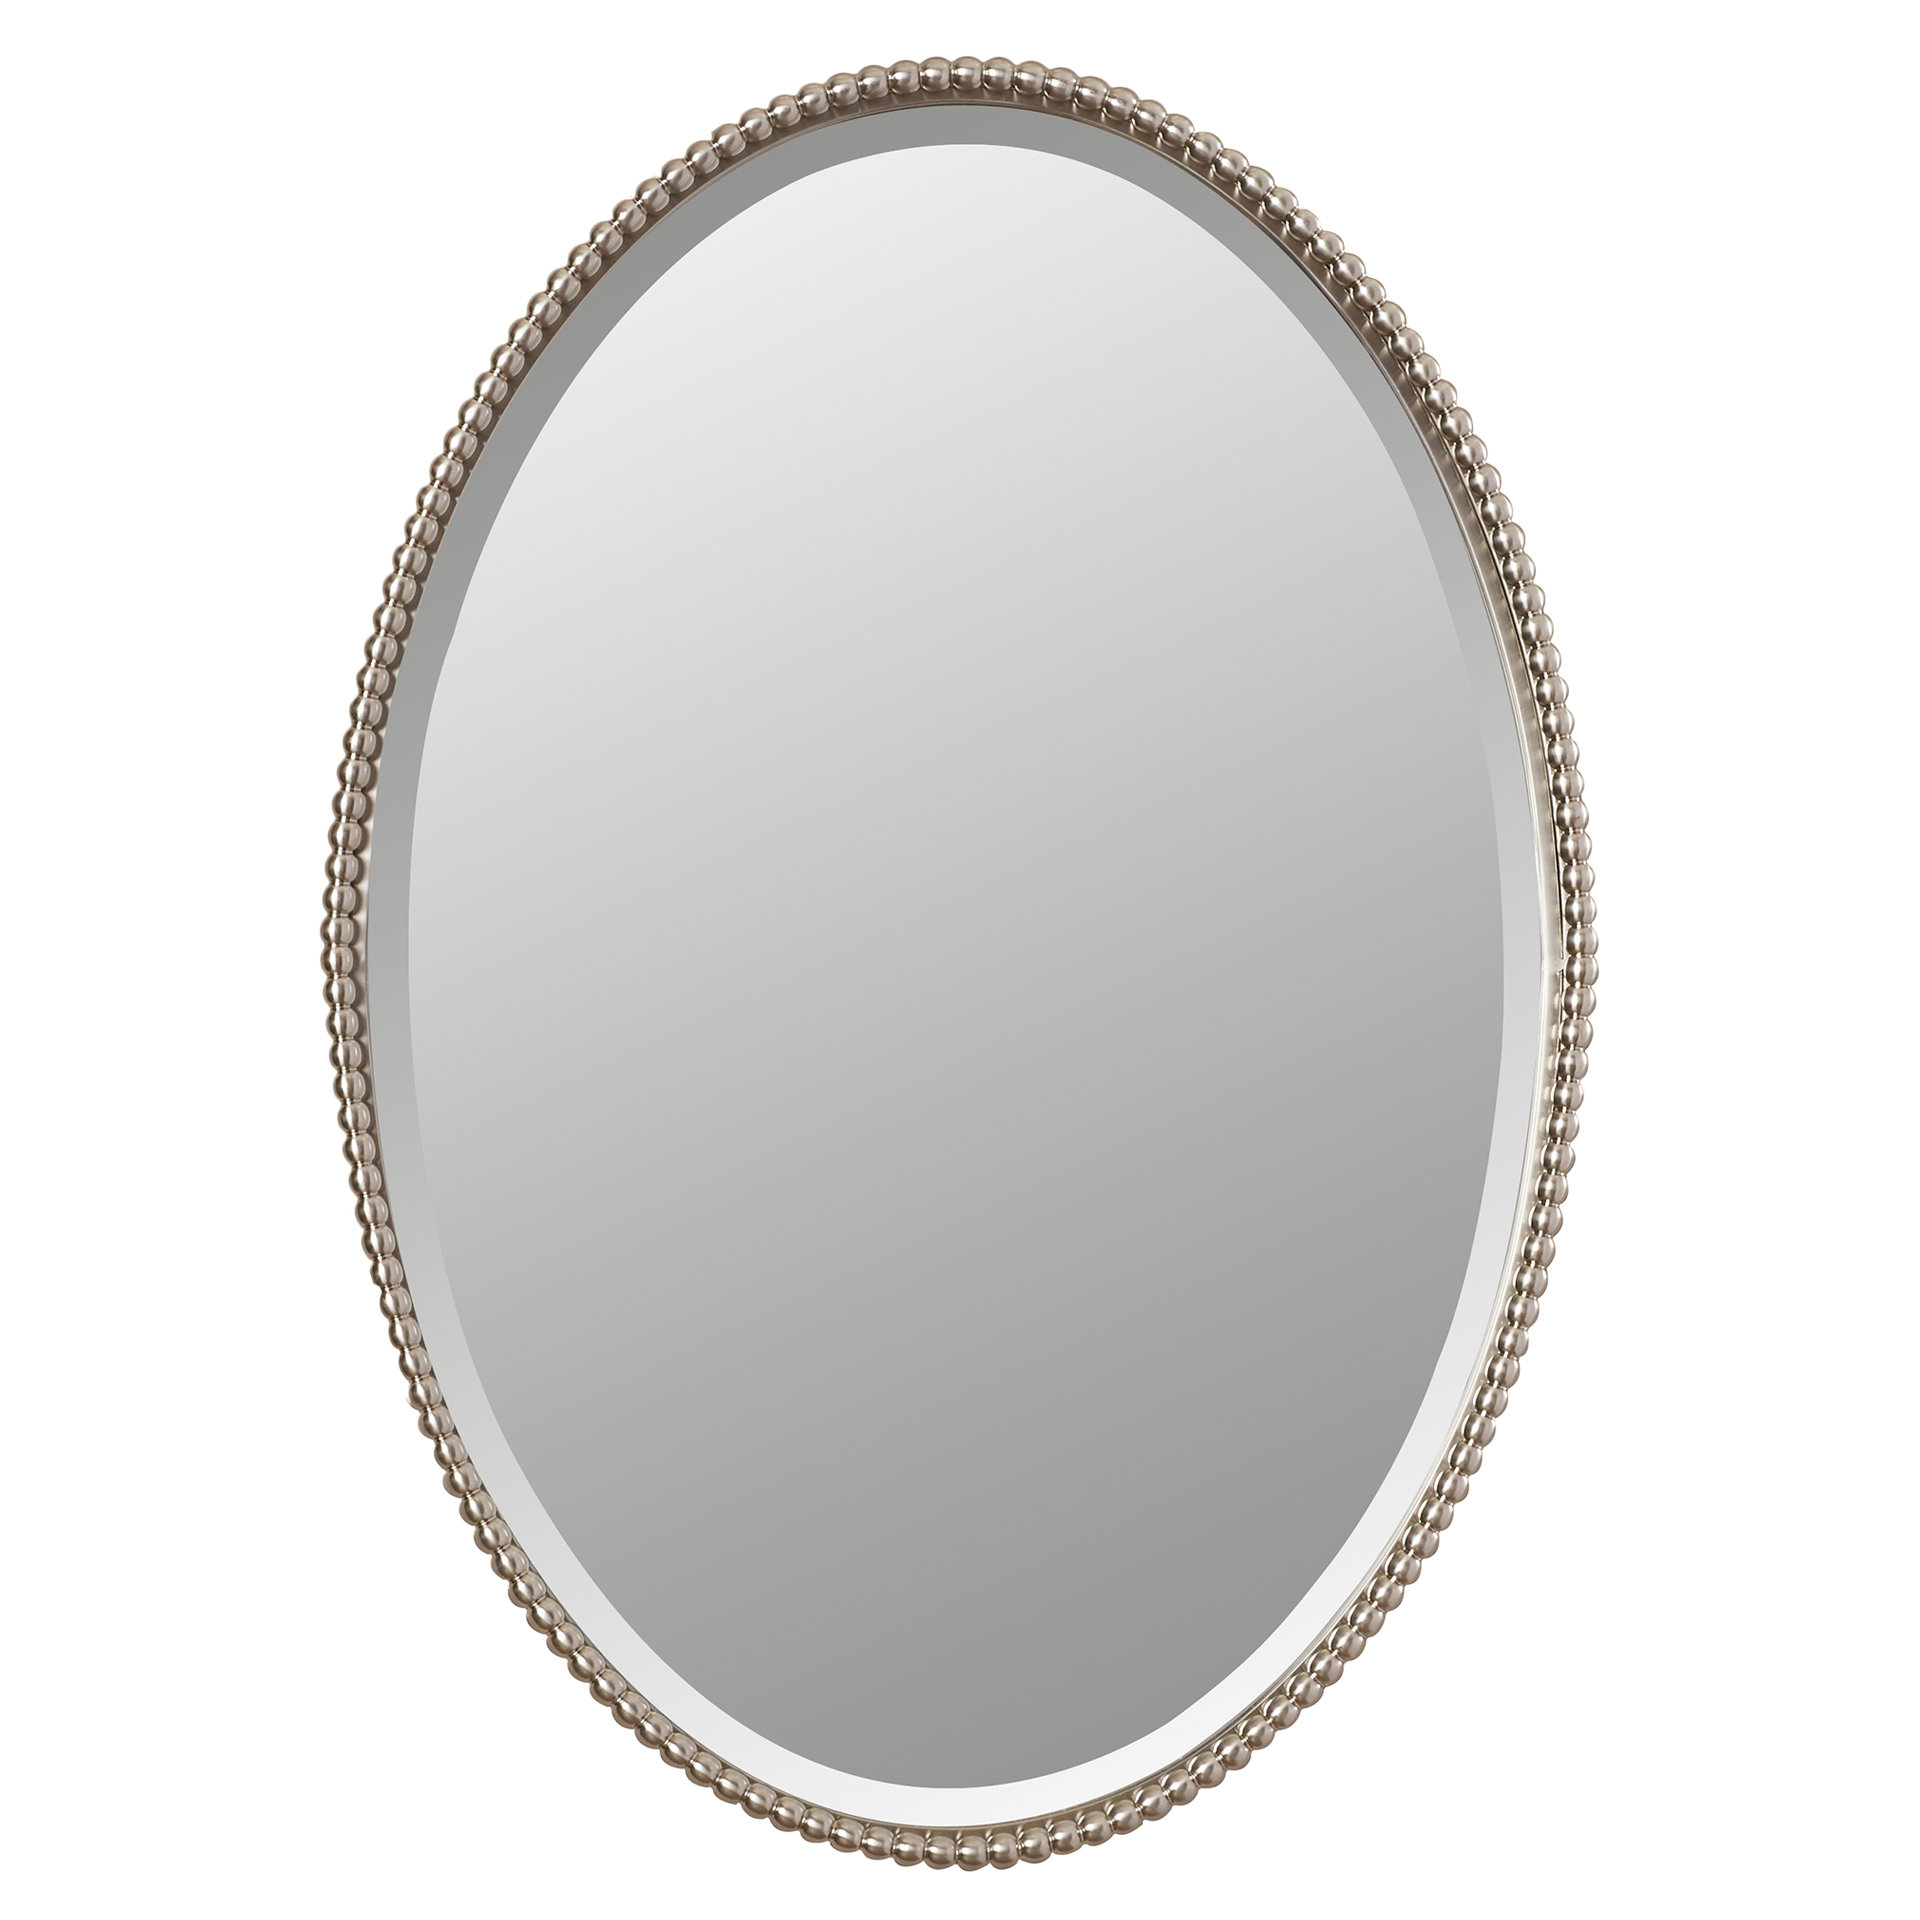 Glen View Beaded Oval Traditional Accent Mirror Within Beaded Accent Wall Mirrors (View 15 of 30)